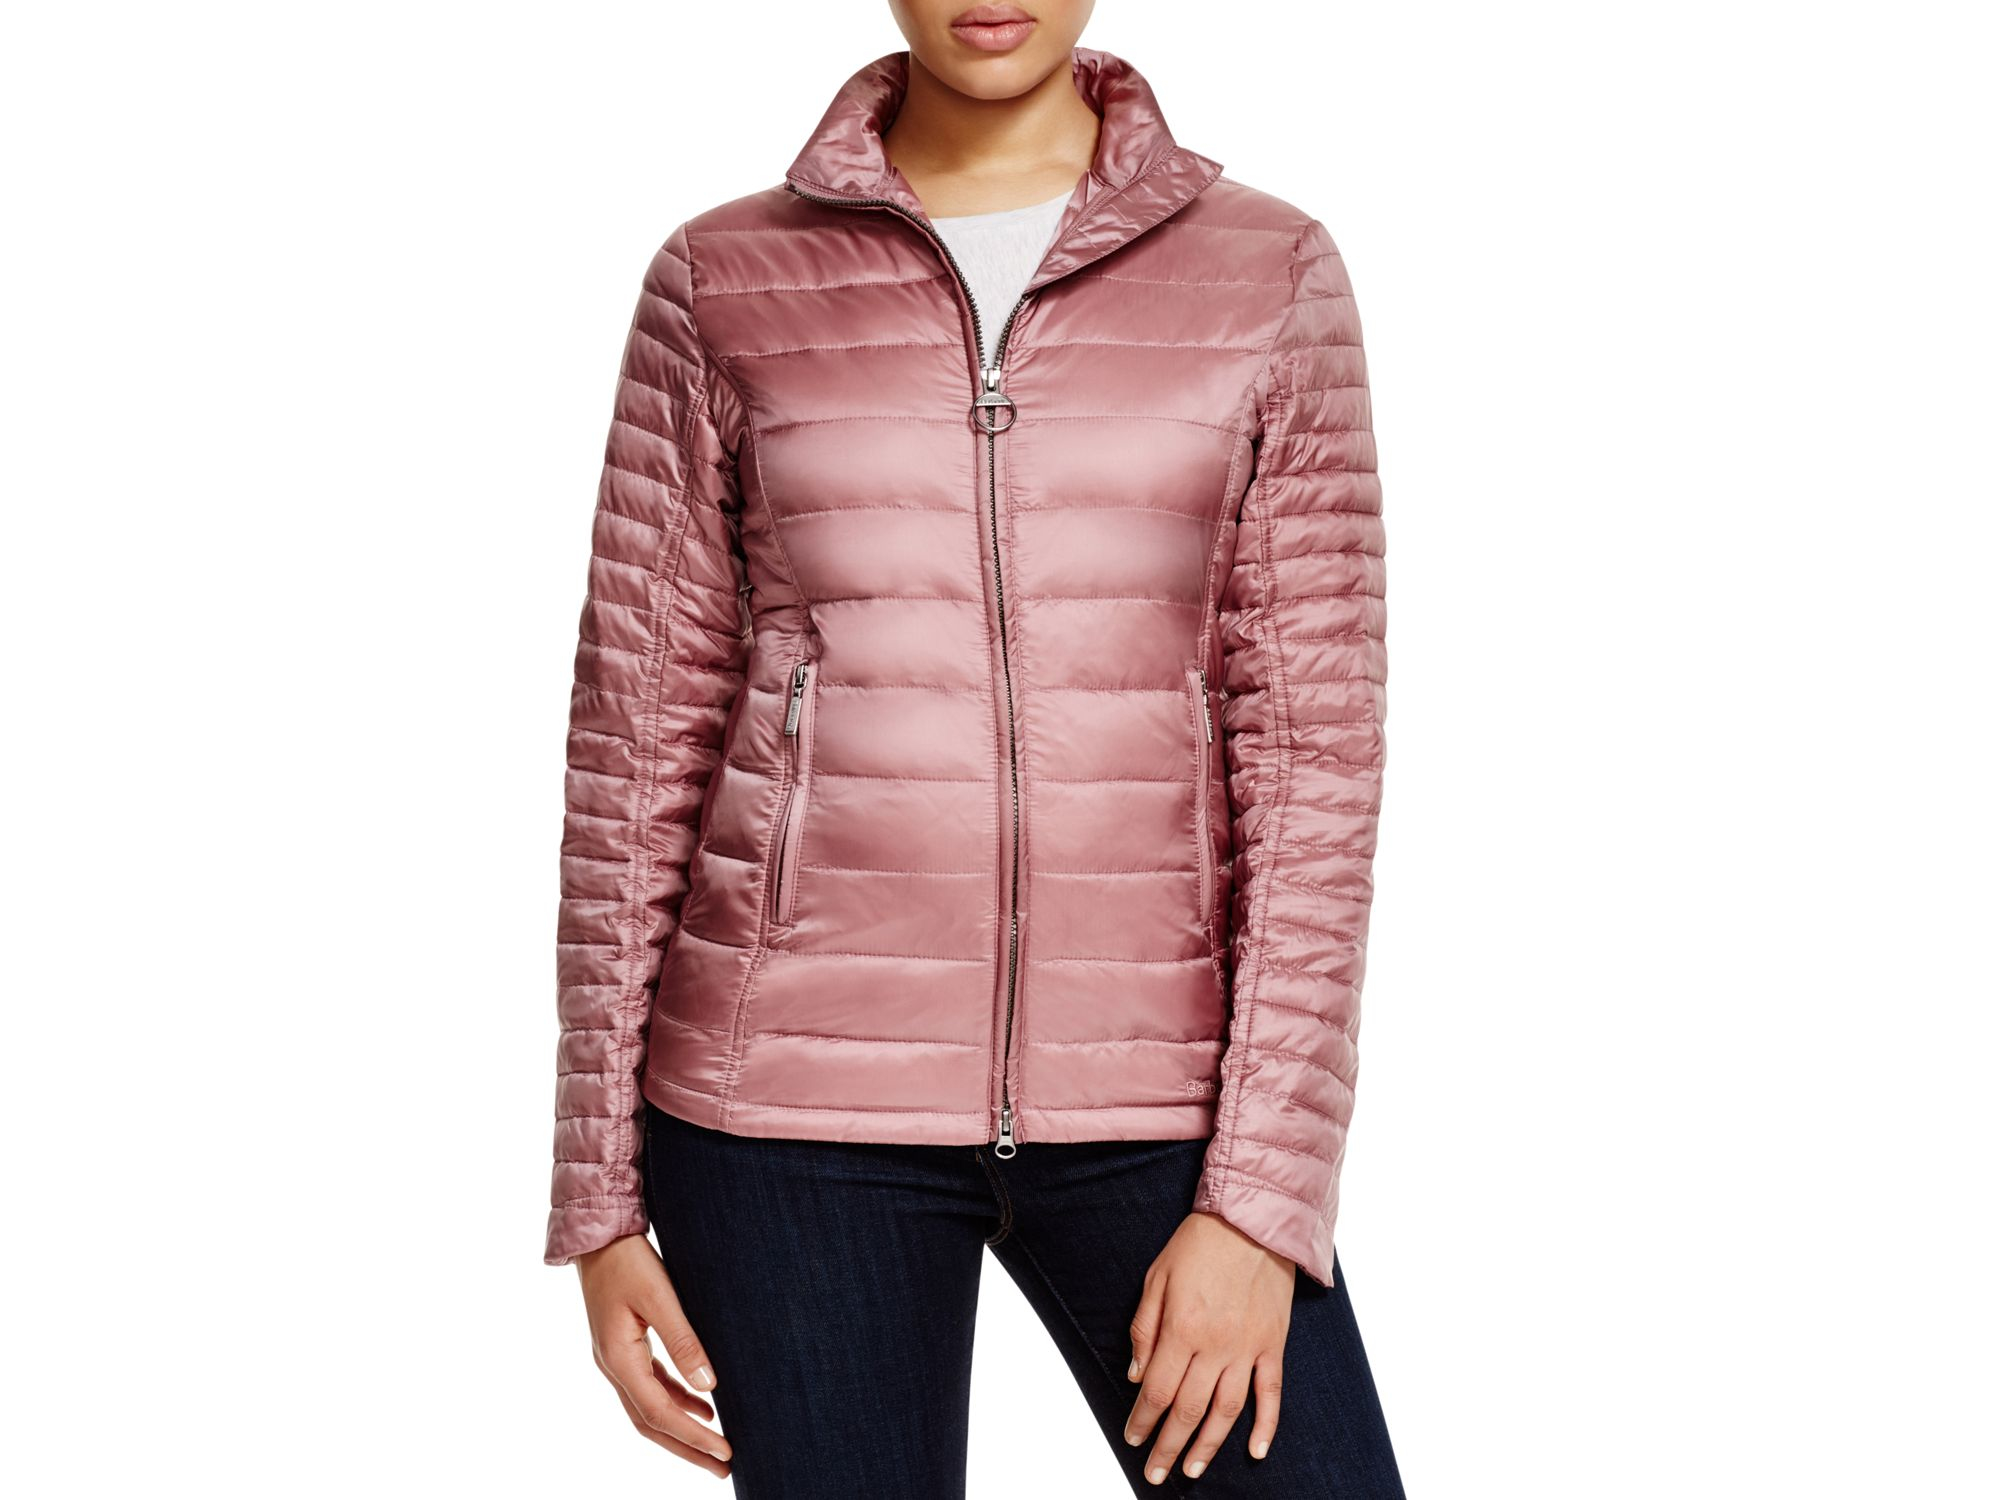 Barbour Pink Quilted Jacket - Quilting